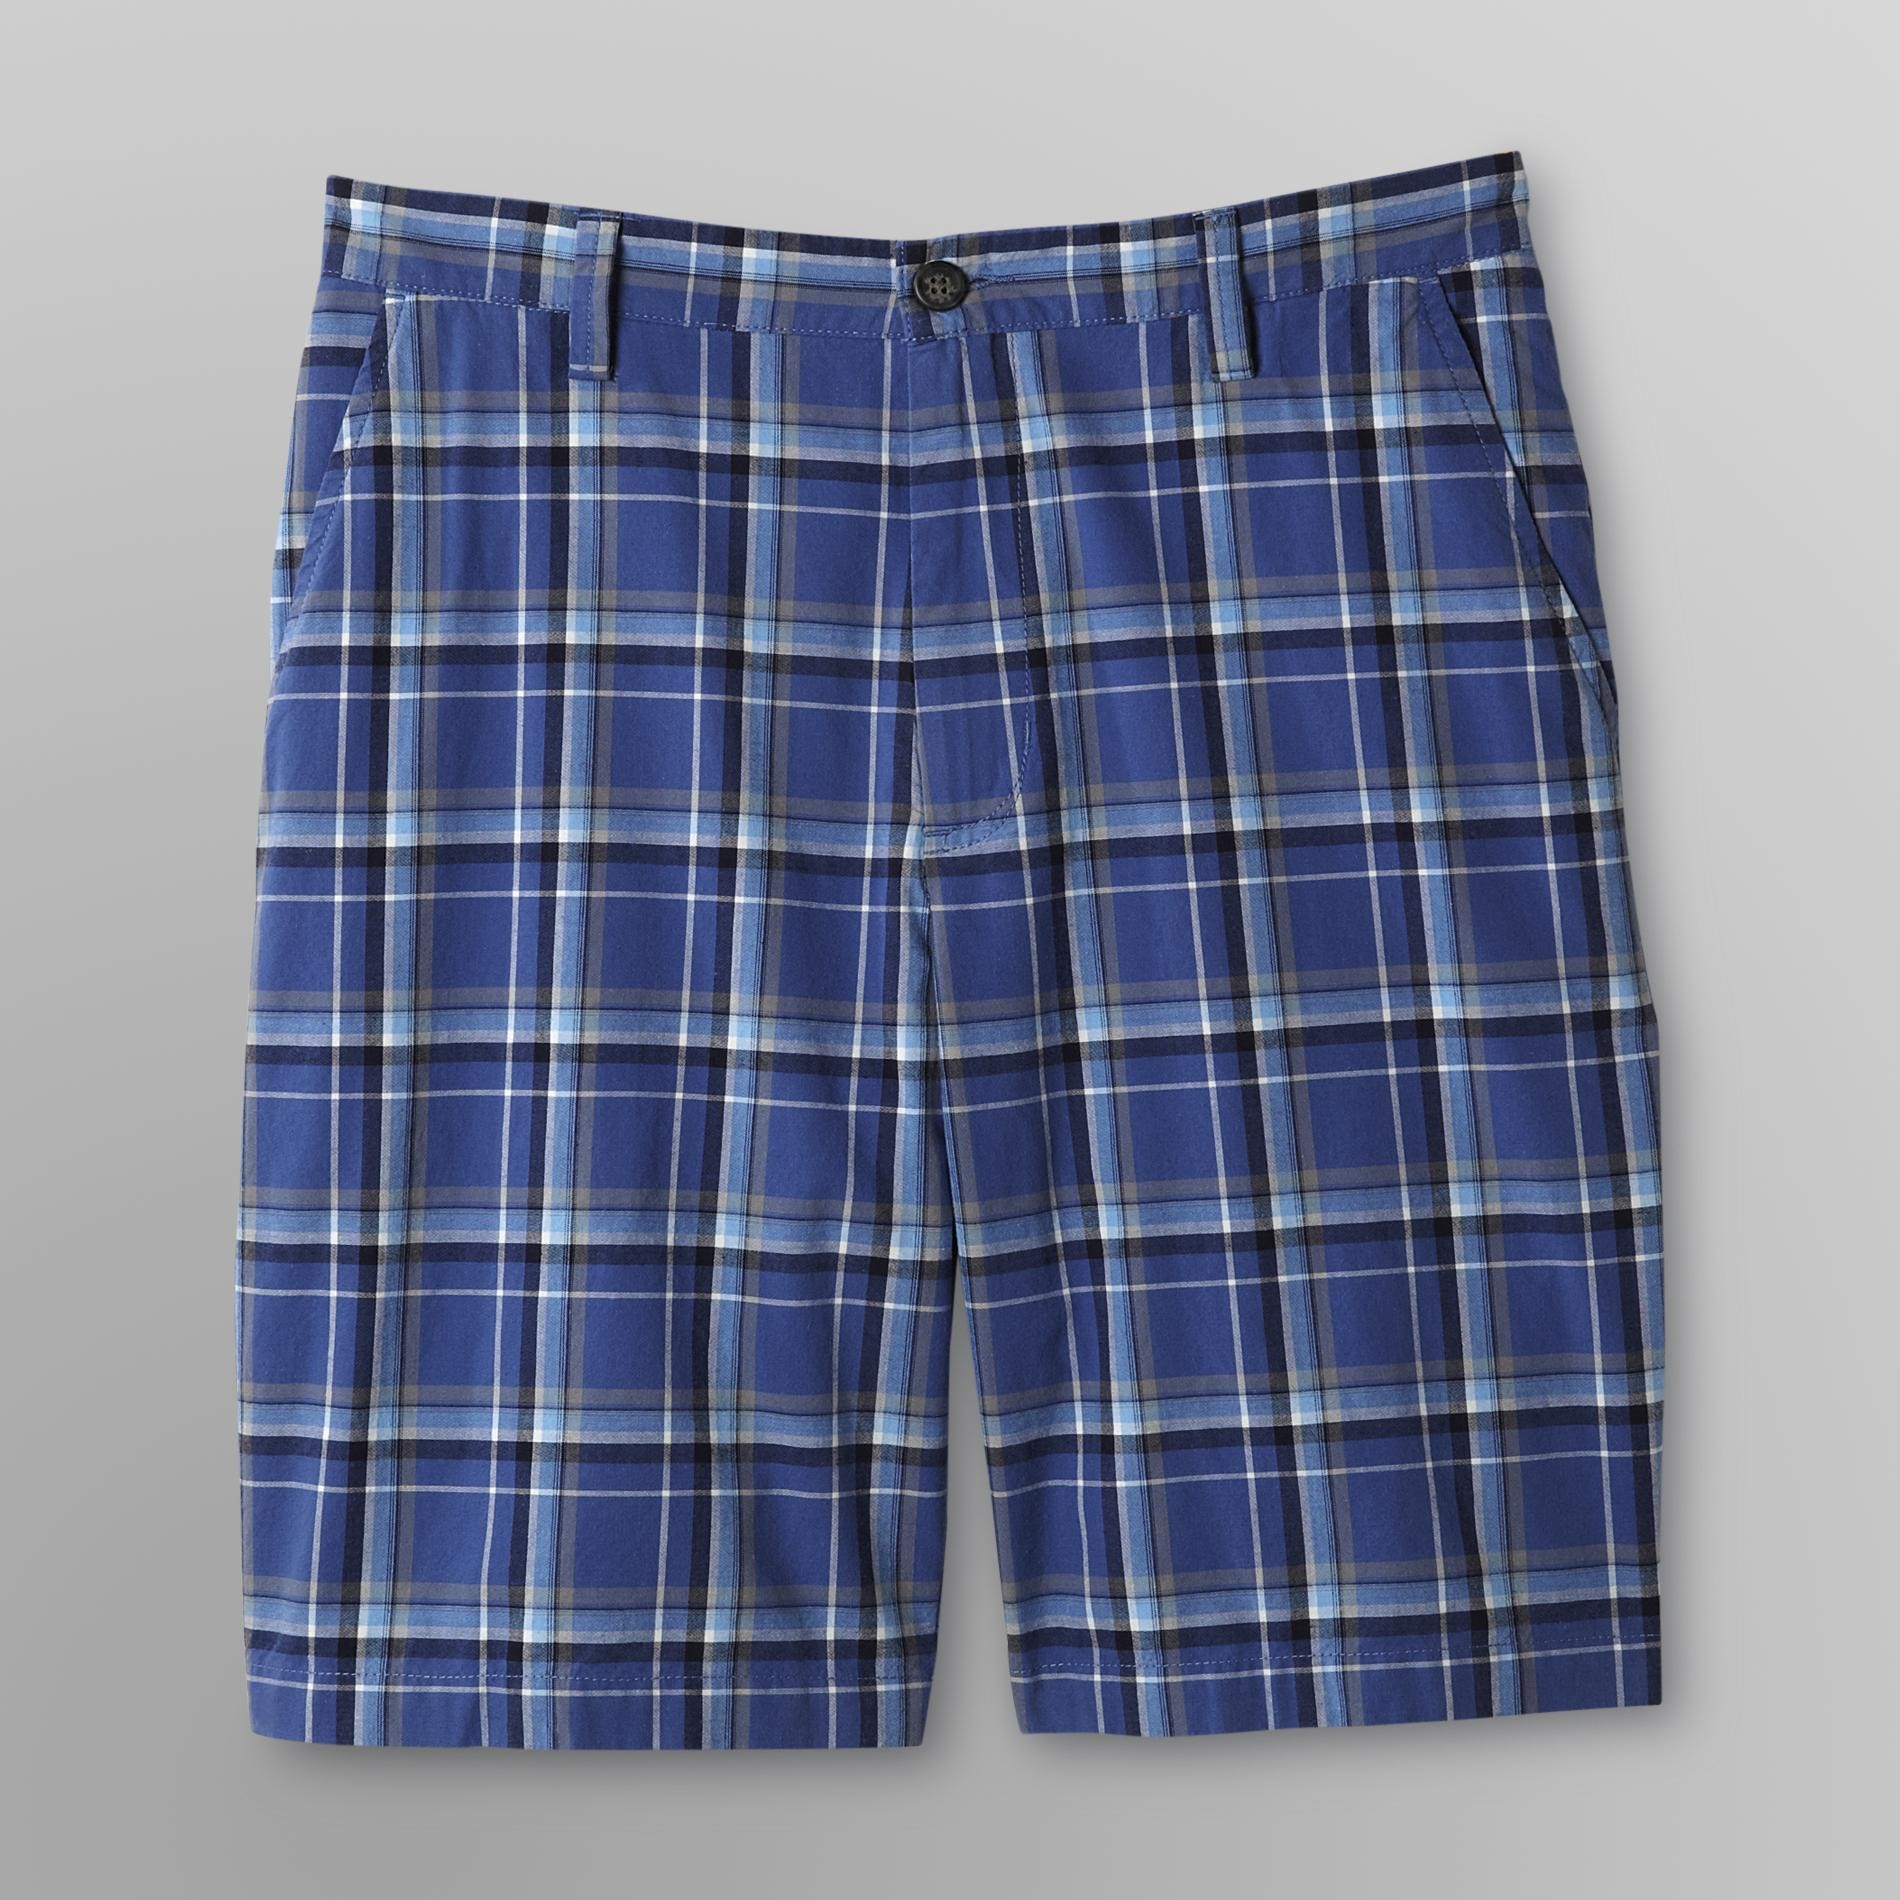 Basic Editions Men's Flat-Front Shorts - Plaid at Kmart.com